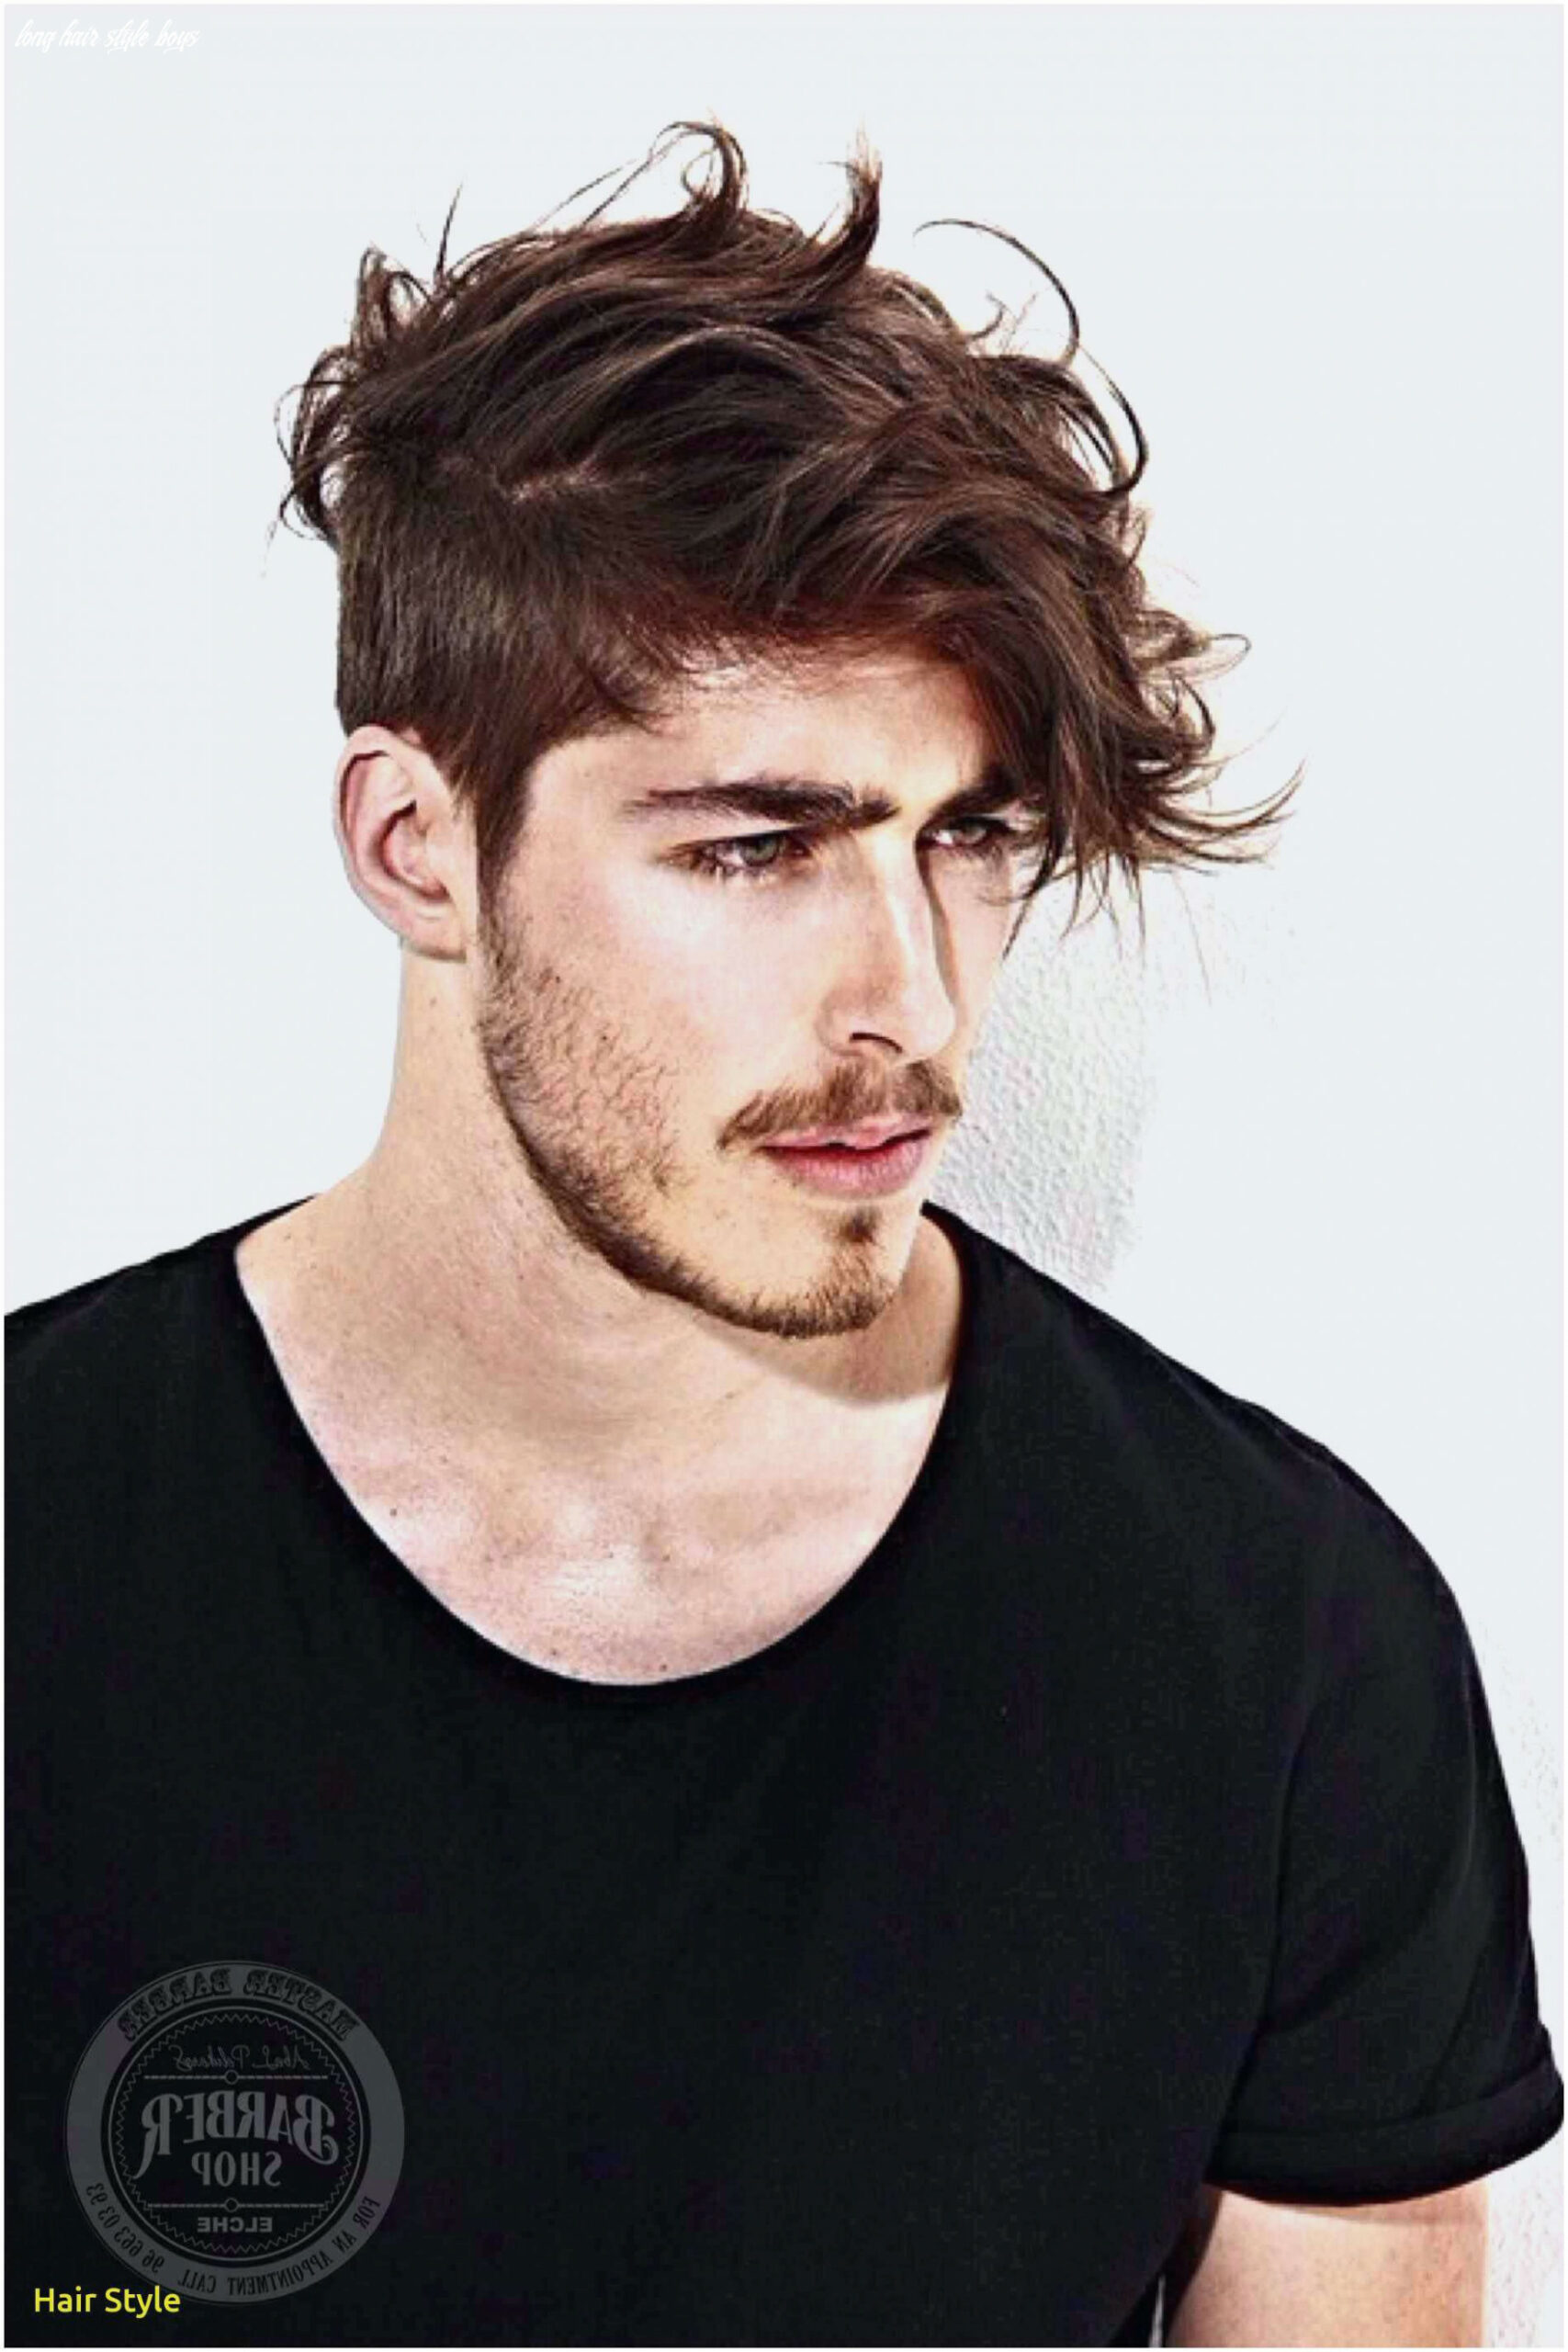 Hair style boys new fashion cool men long hairstyle awesome dyed